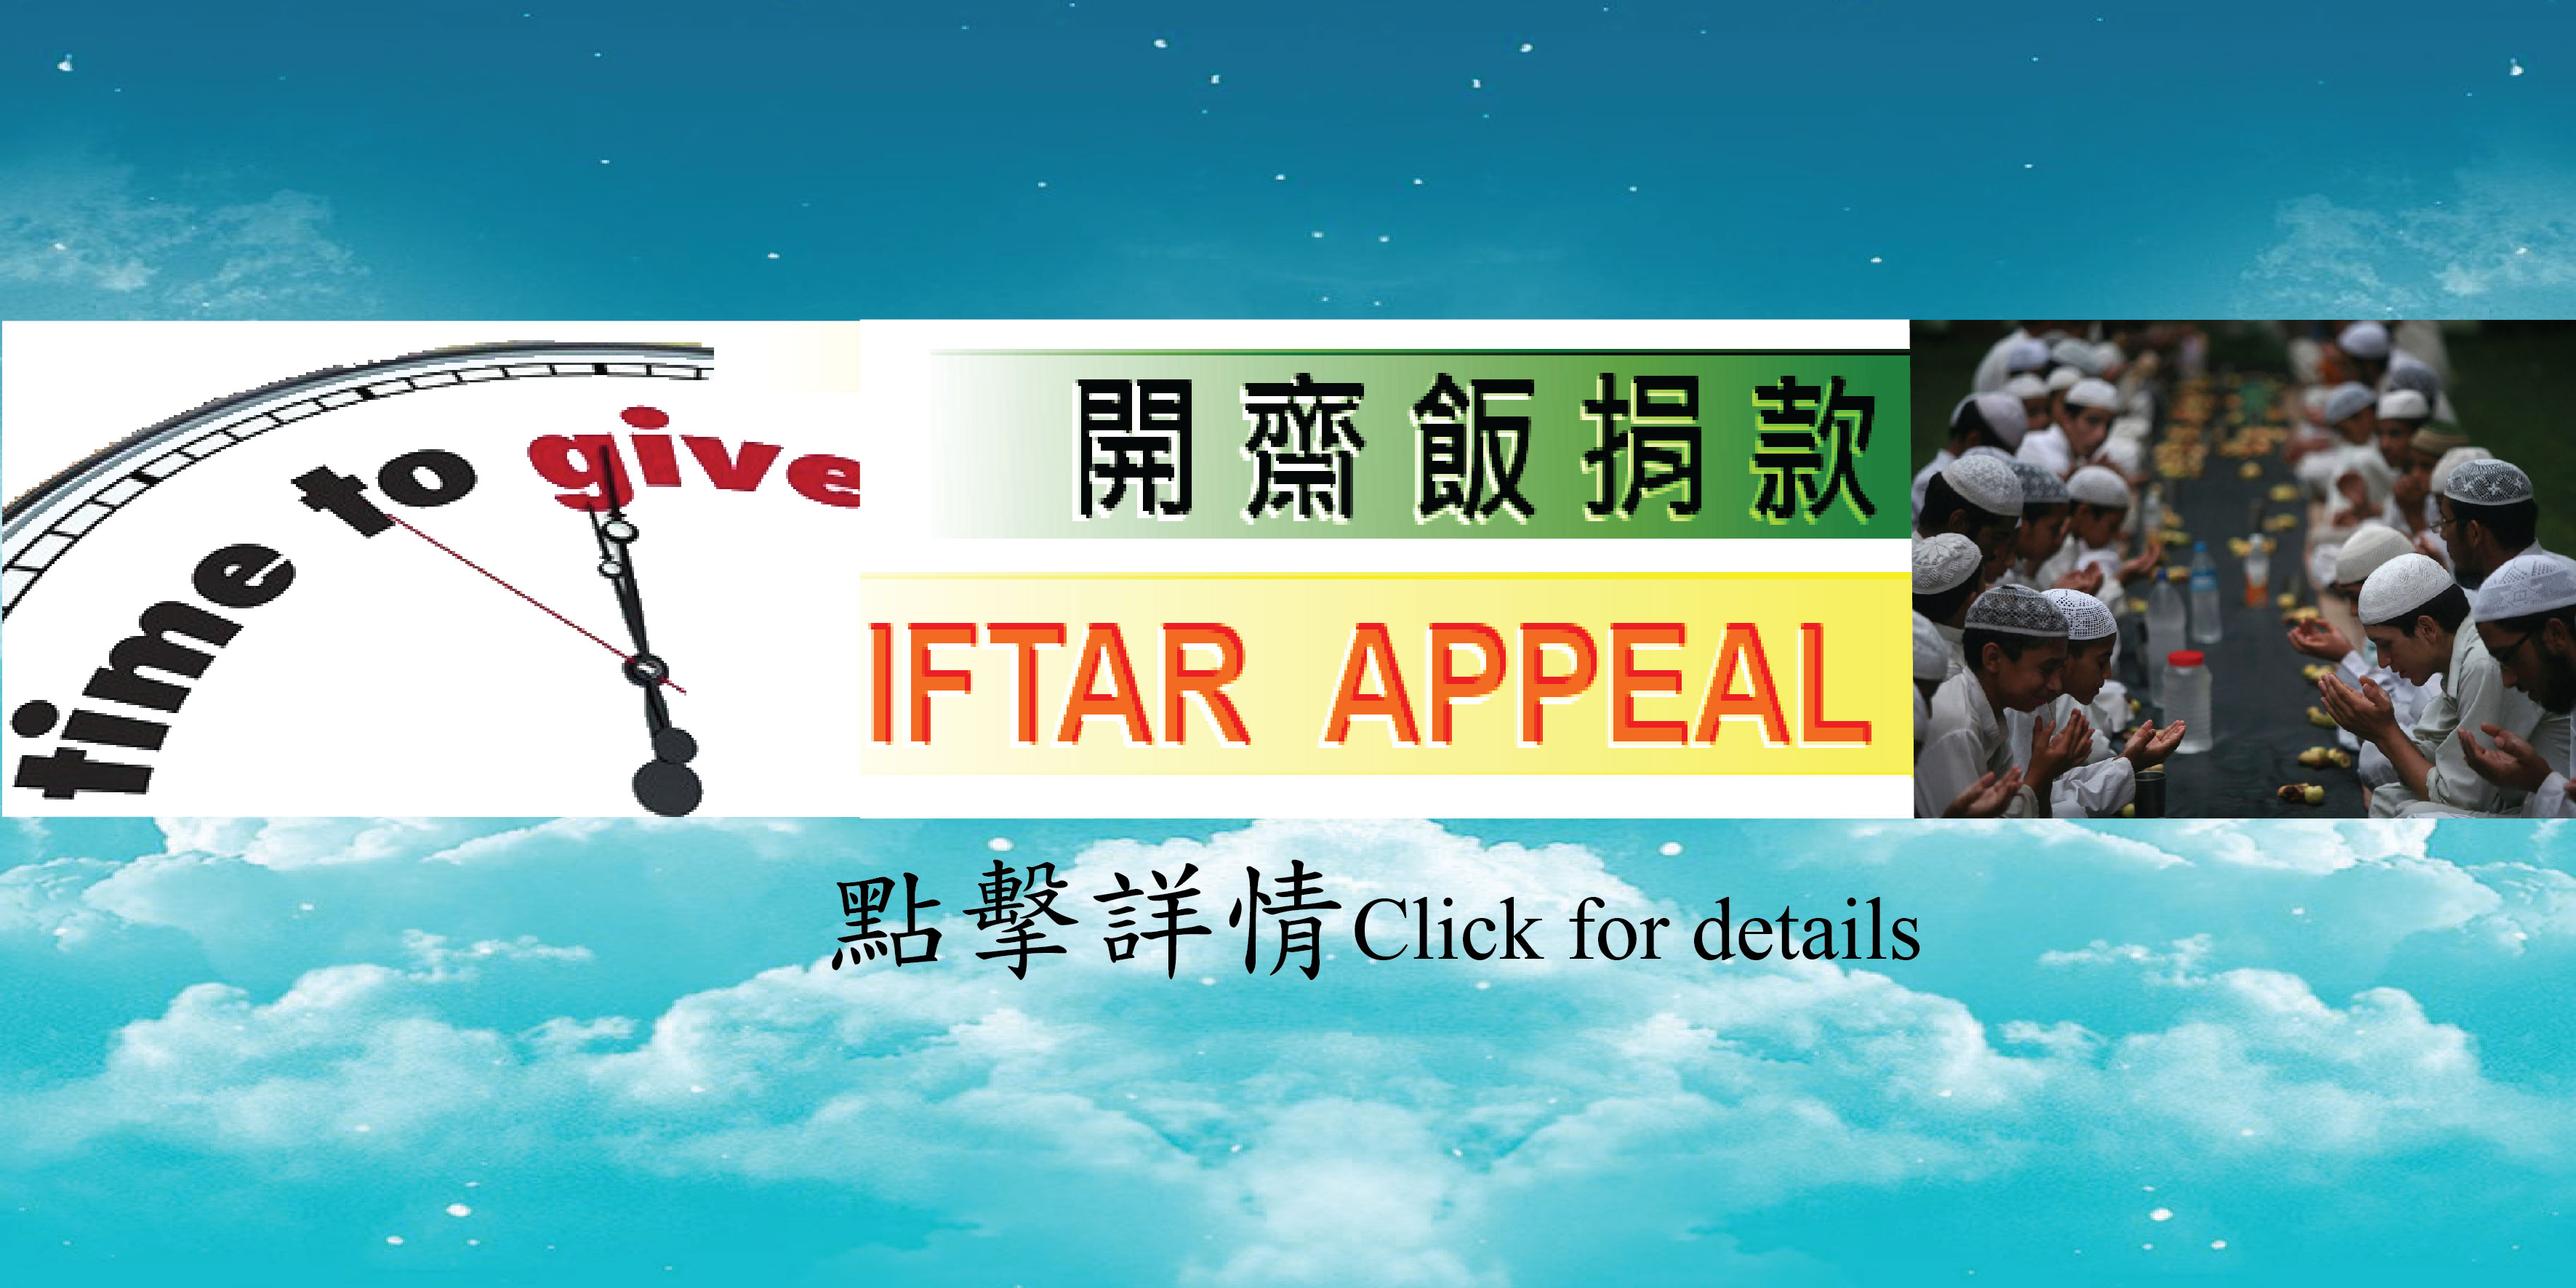 Iftar Appeal